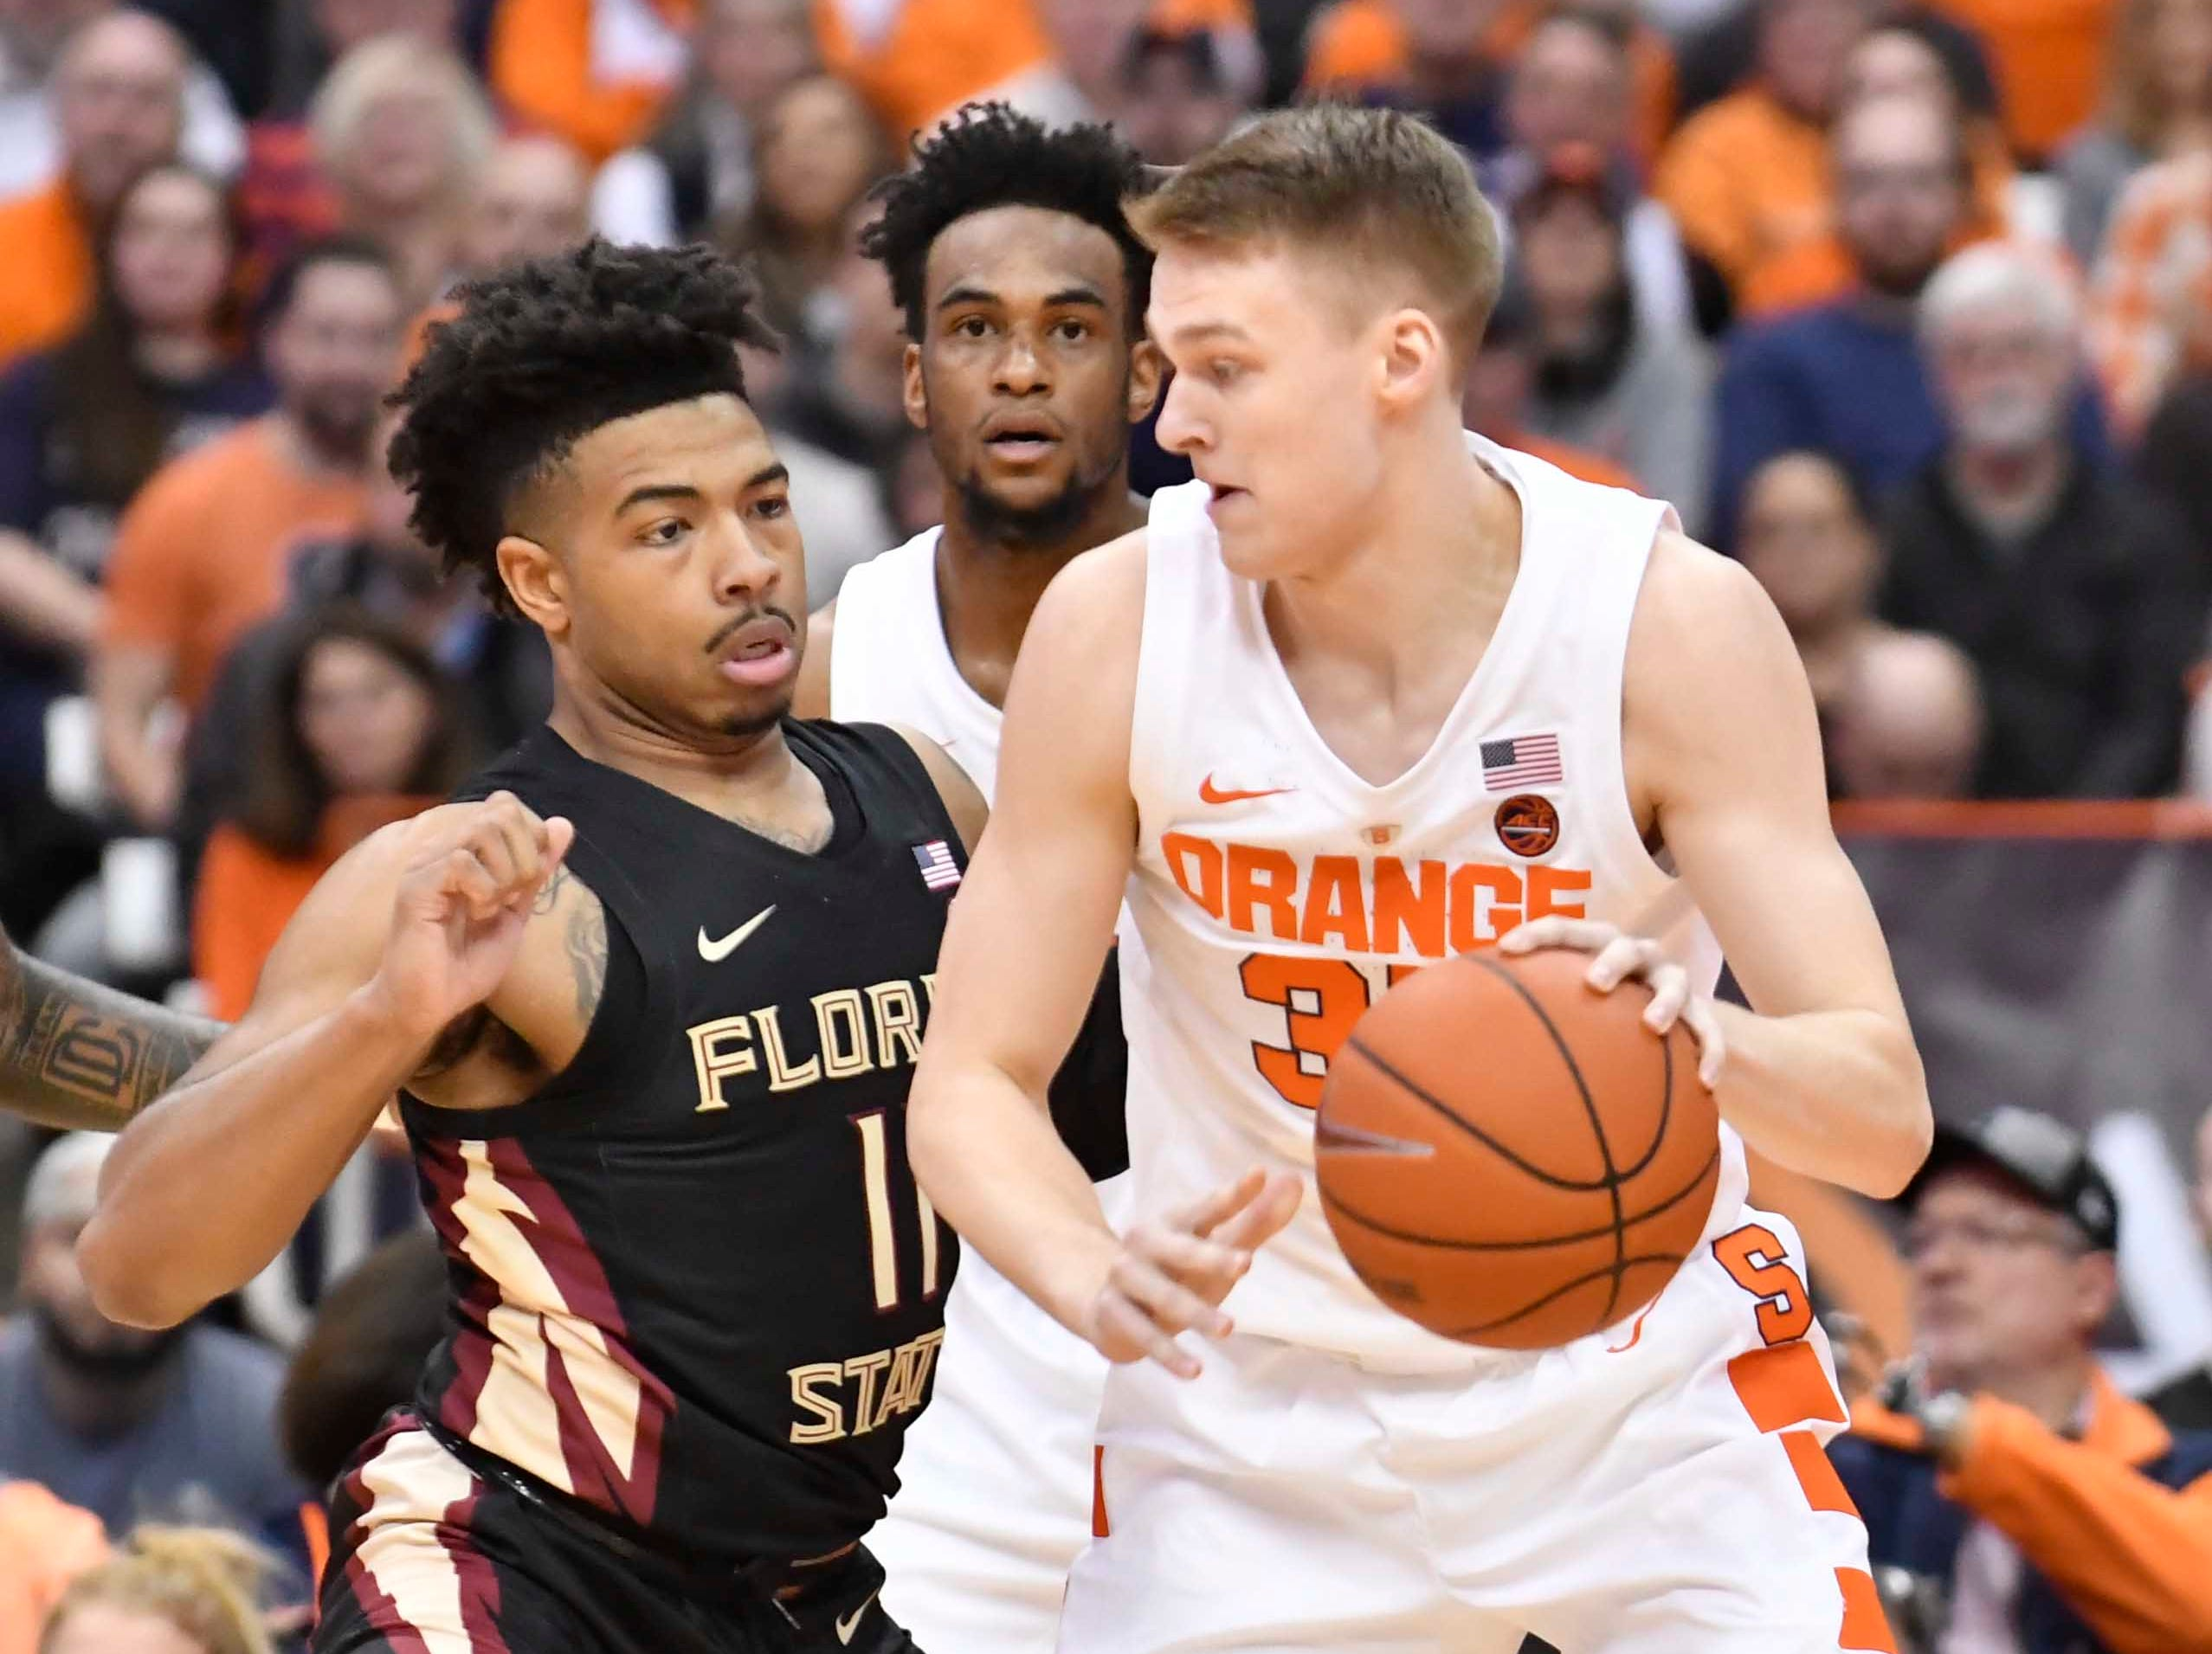 Feb 5, 2019; Syracuse, NY, USA; Syracuse Orange guard Buddy Boeheim (35) works to get the ball past Florida State Seminoles guard David Nichols (11) in the first half at the Carrier Dome. Mandatory Credit: Mark Konezny-USA TODAY Sports